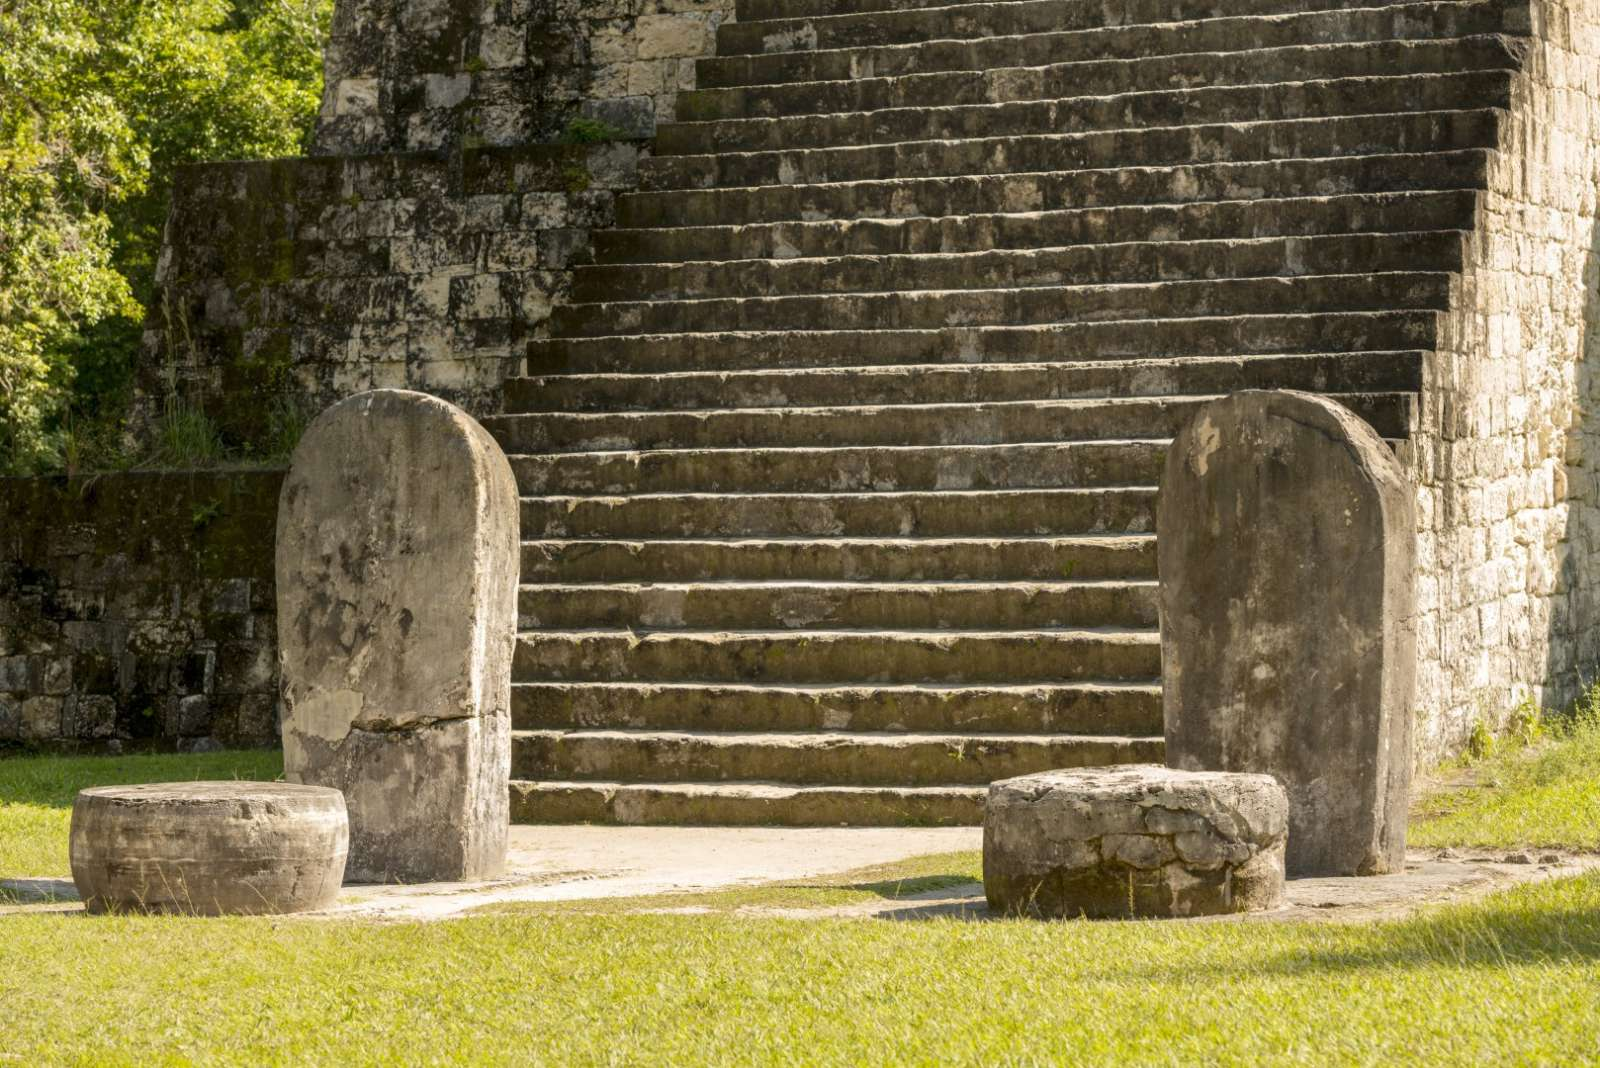 Steps and stelae at Tikal, Guatemala